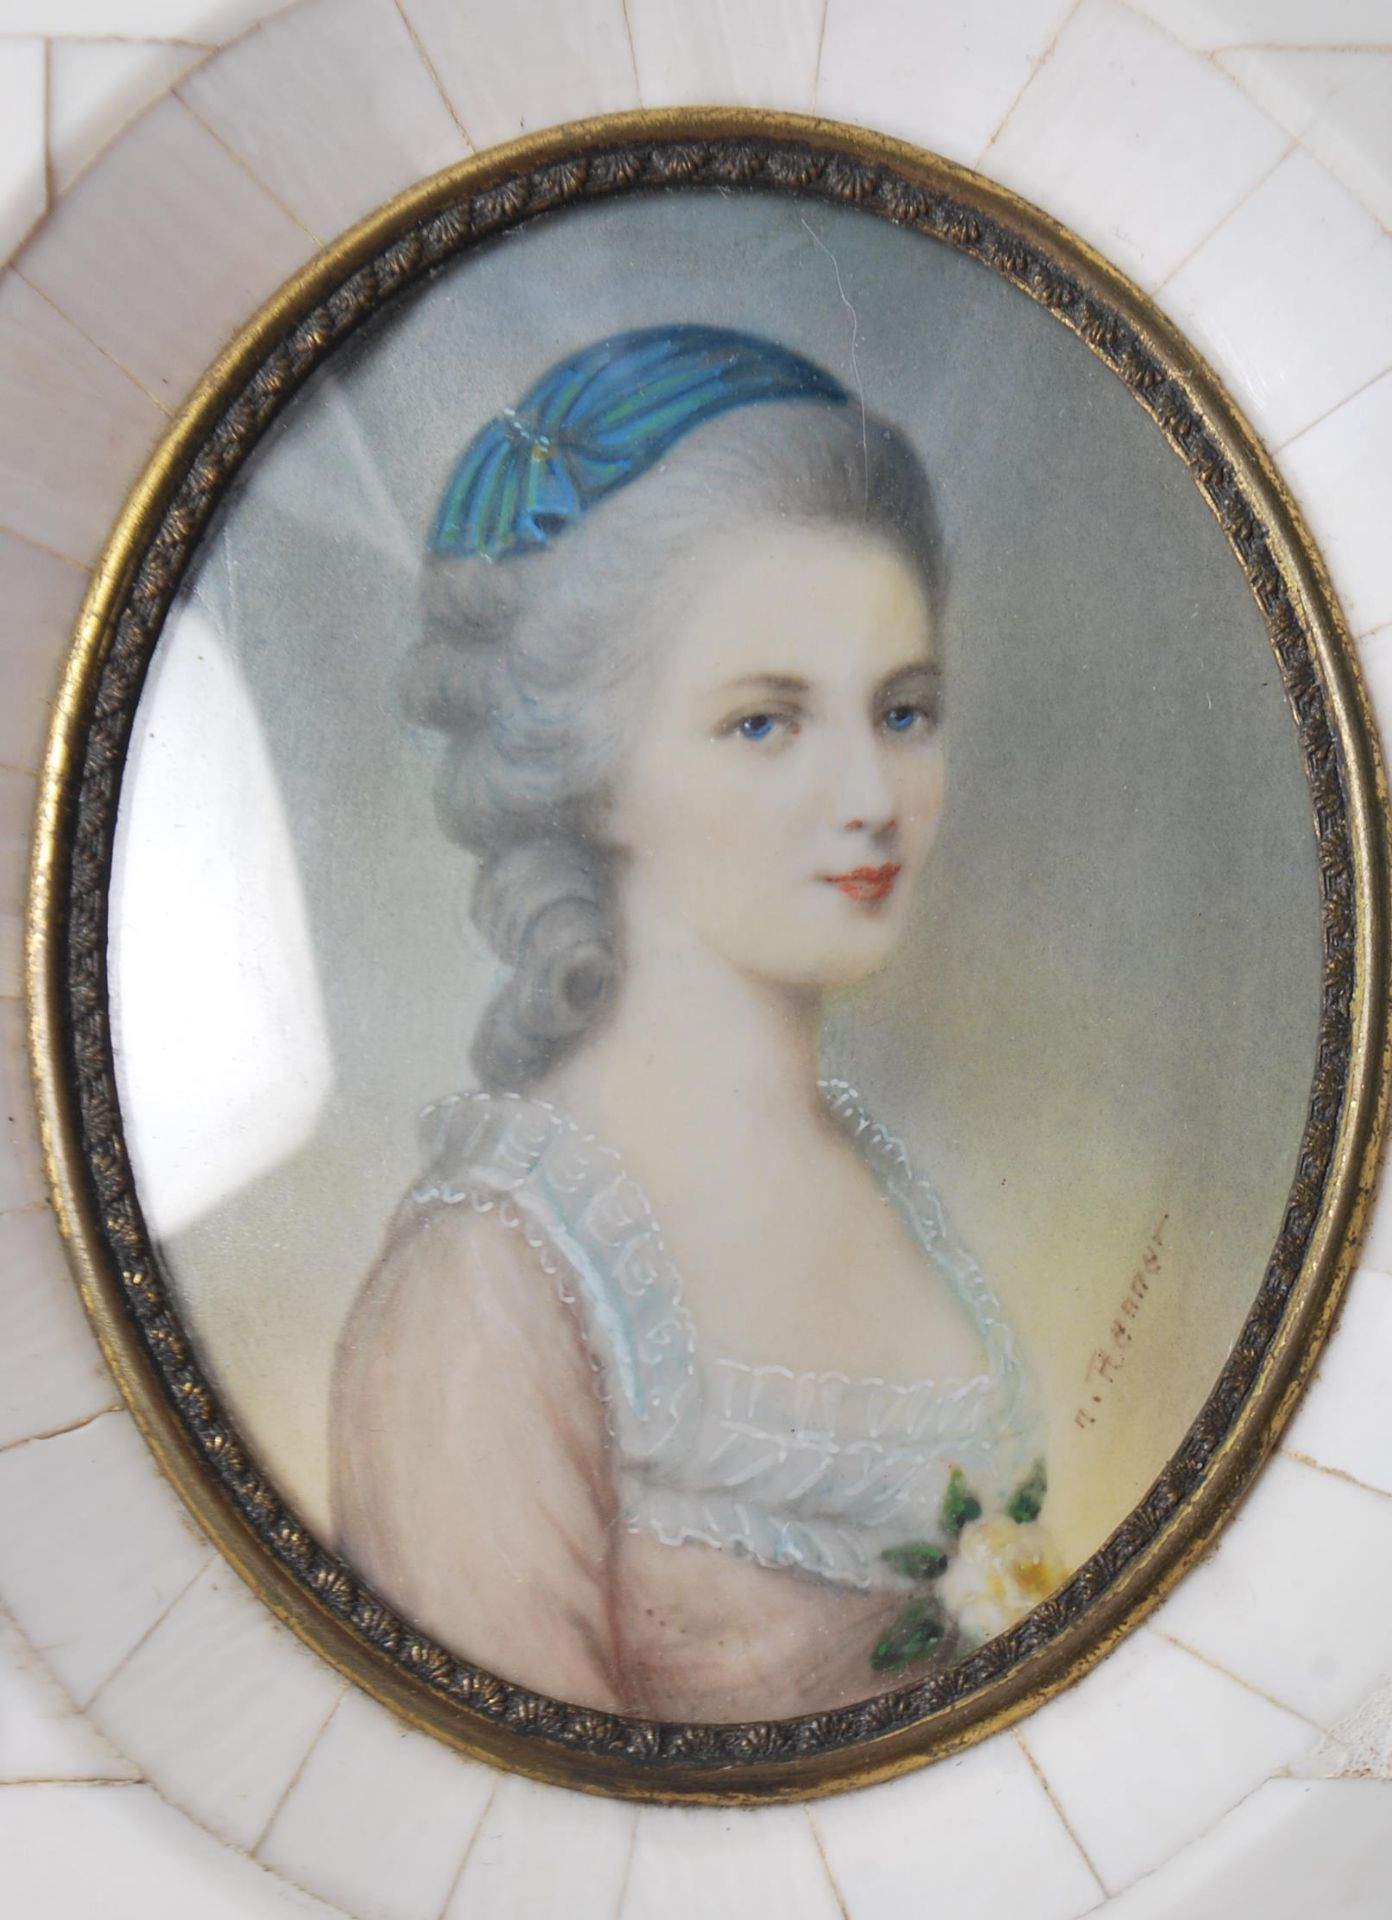 GROUP OF SIX ANTIQUE AND VINTAGE MINIATURE PORTRAITS - TWO HAND PAINTED - Image 6 of 8